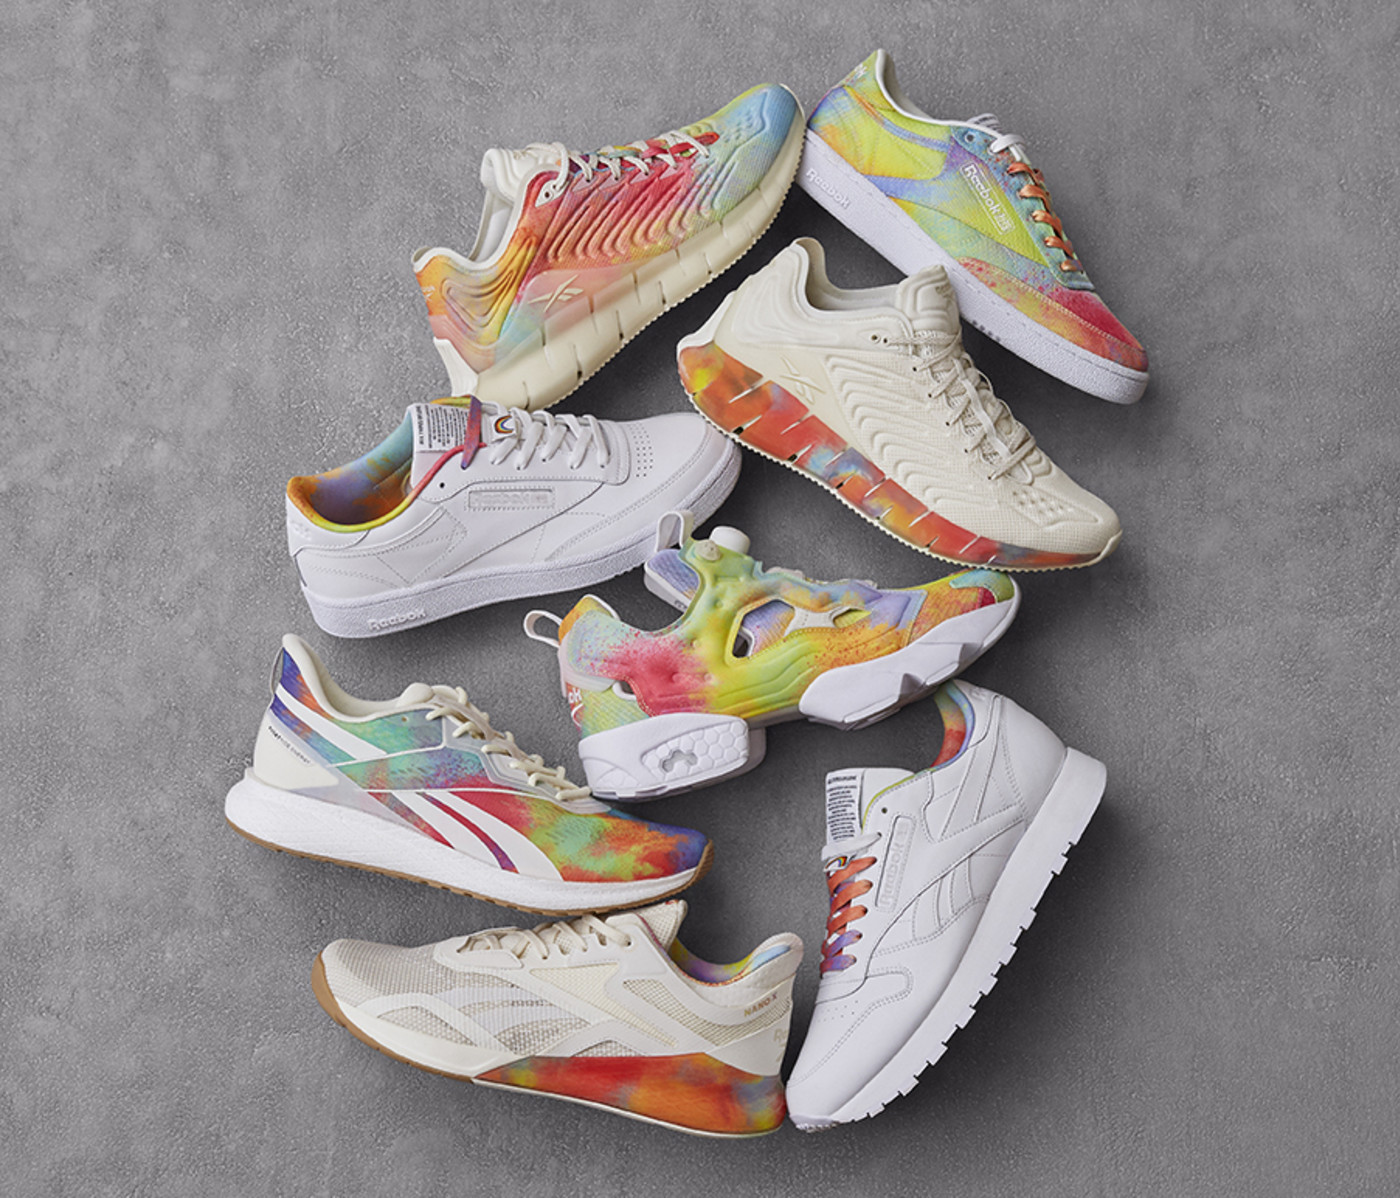 Reebok 'All Types of Love' Collection